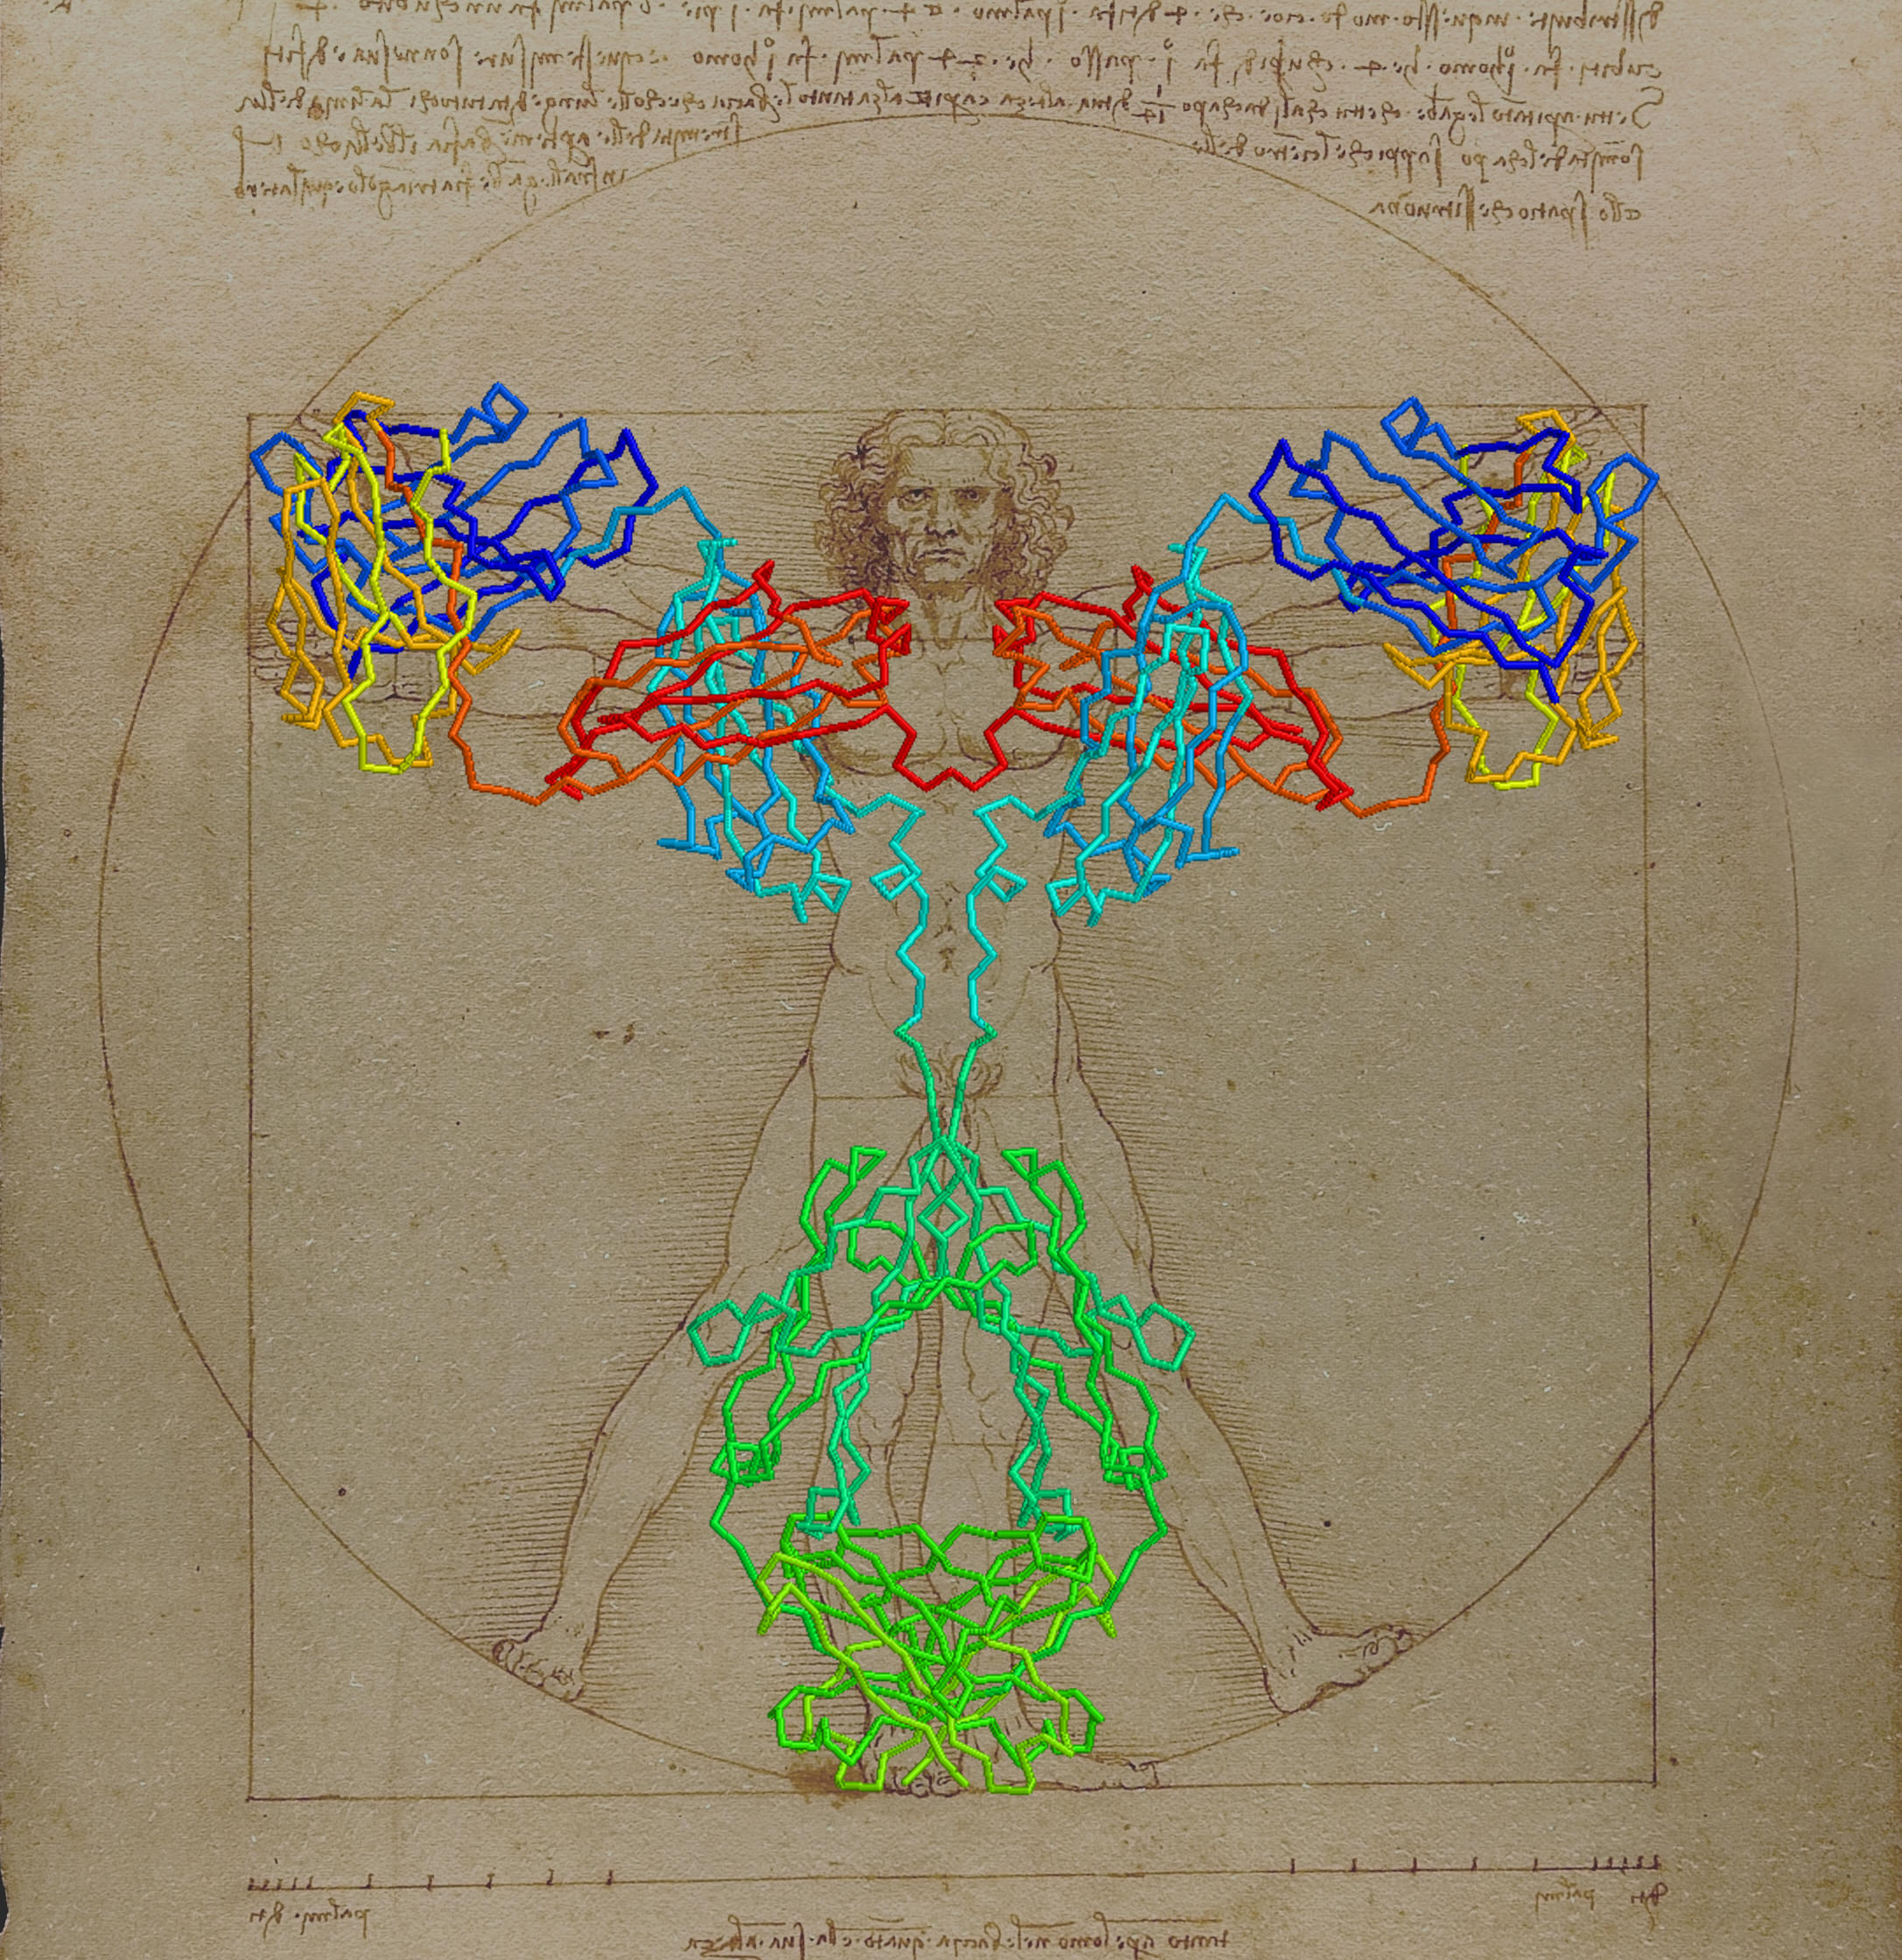 Fig. 3 Julian Voss-Andreae, Padlan's Antibody superimposed on Vitruvian Man, Computer sketch of the idea for Angel of the West, 2005